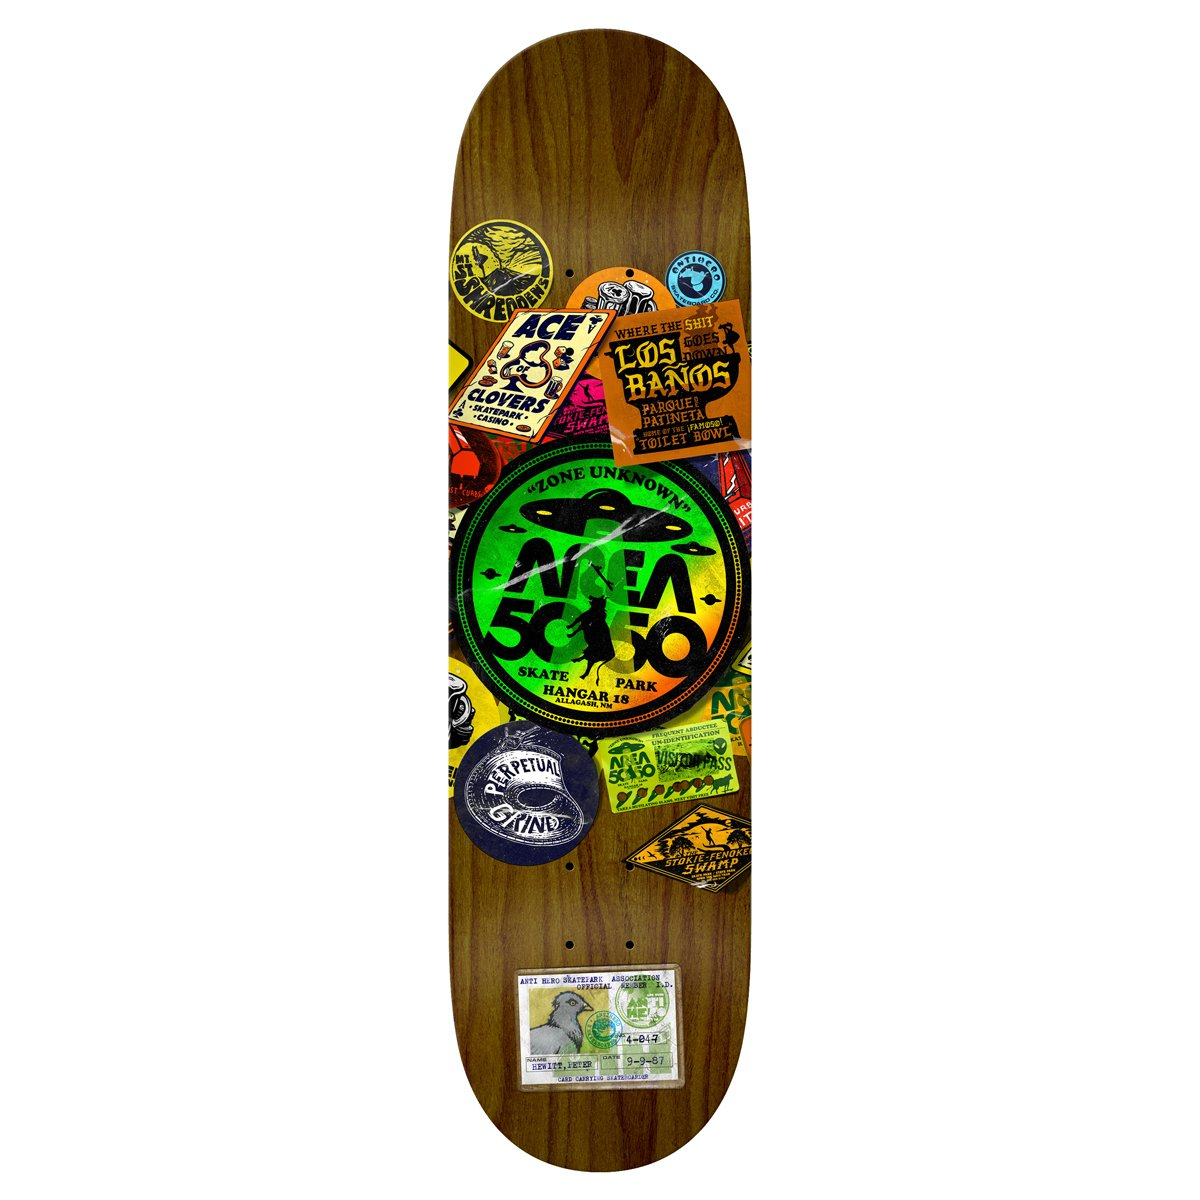 Anti-Hero Parkboard Deck Product Photo #1